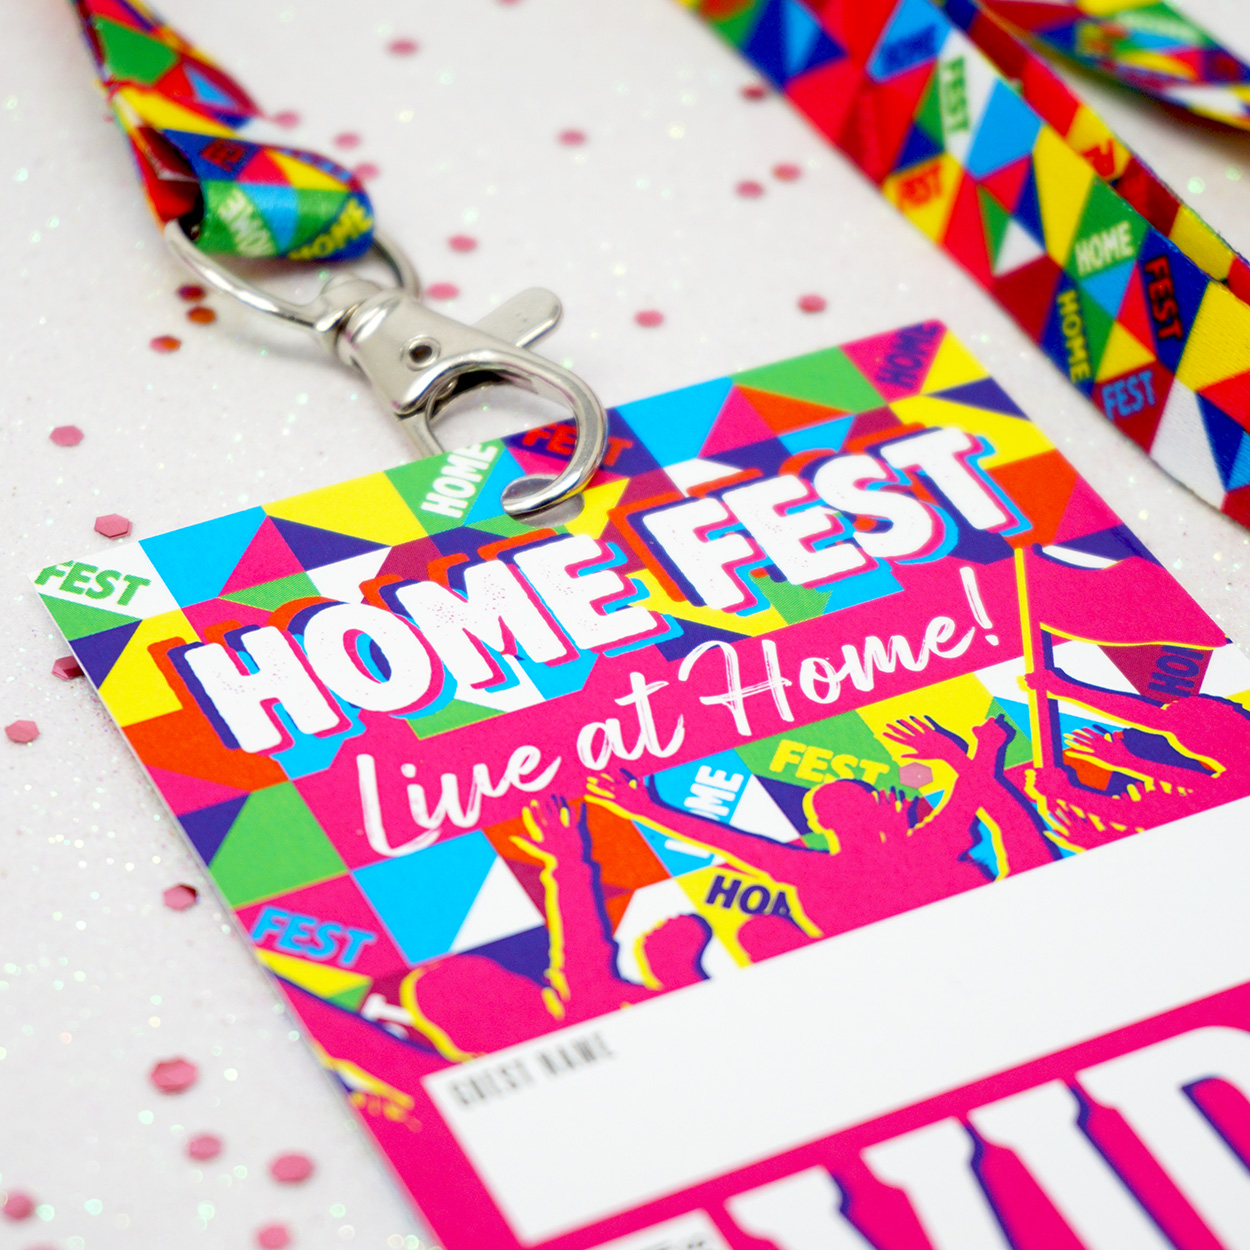 homefest festival at home lanyards wristbands